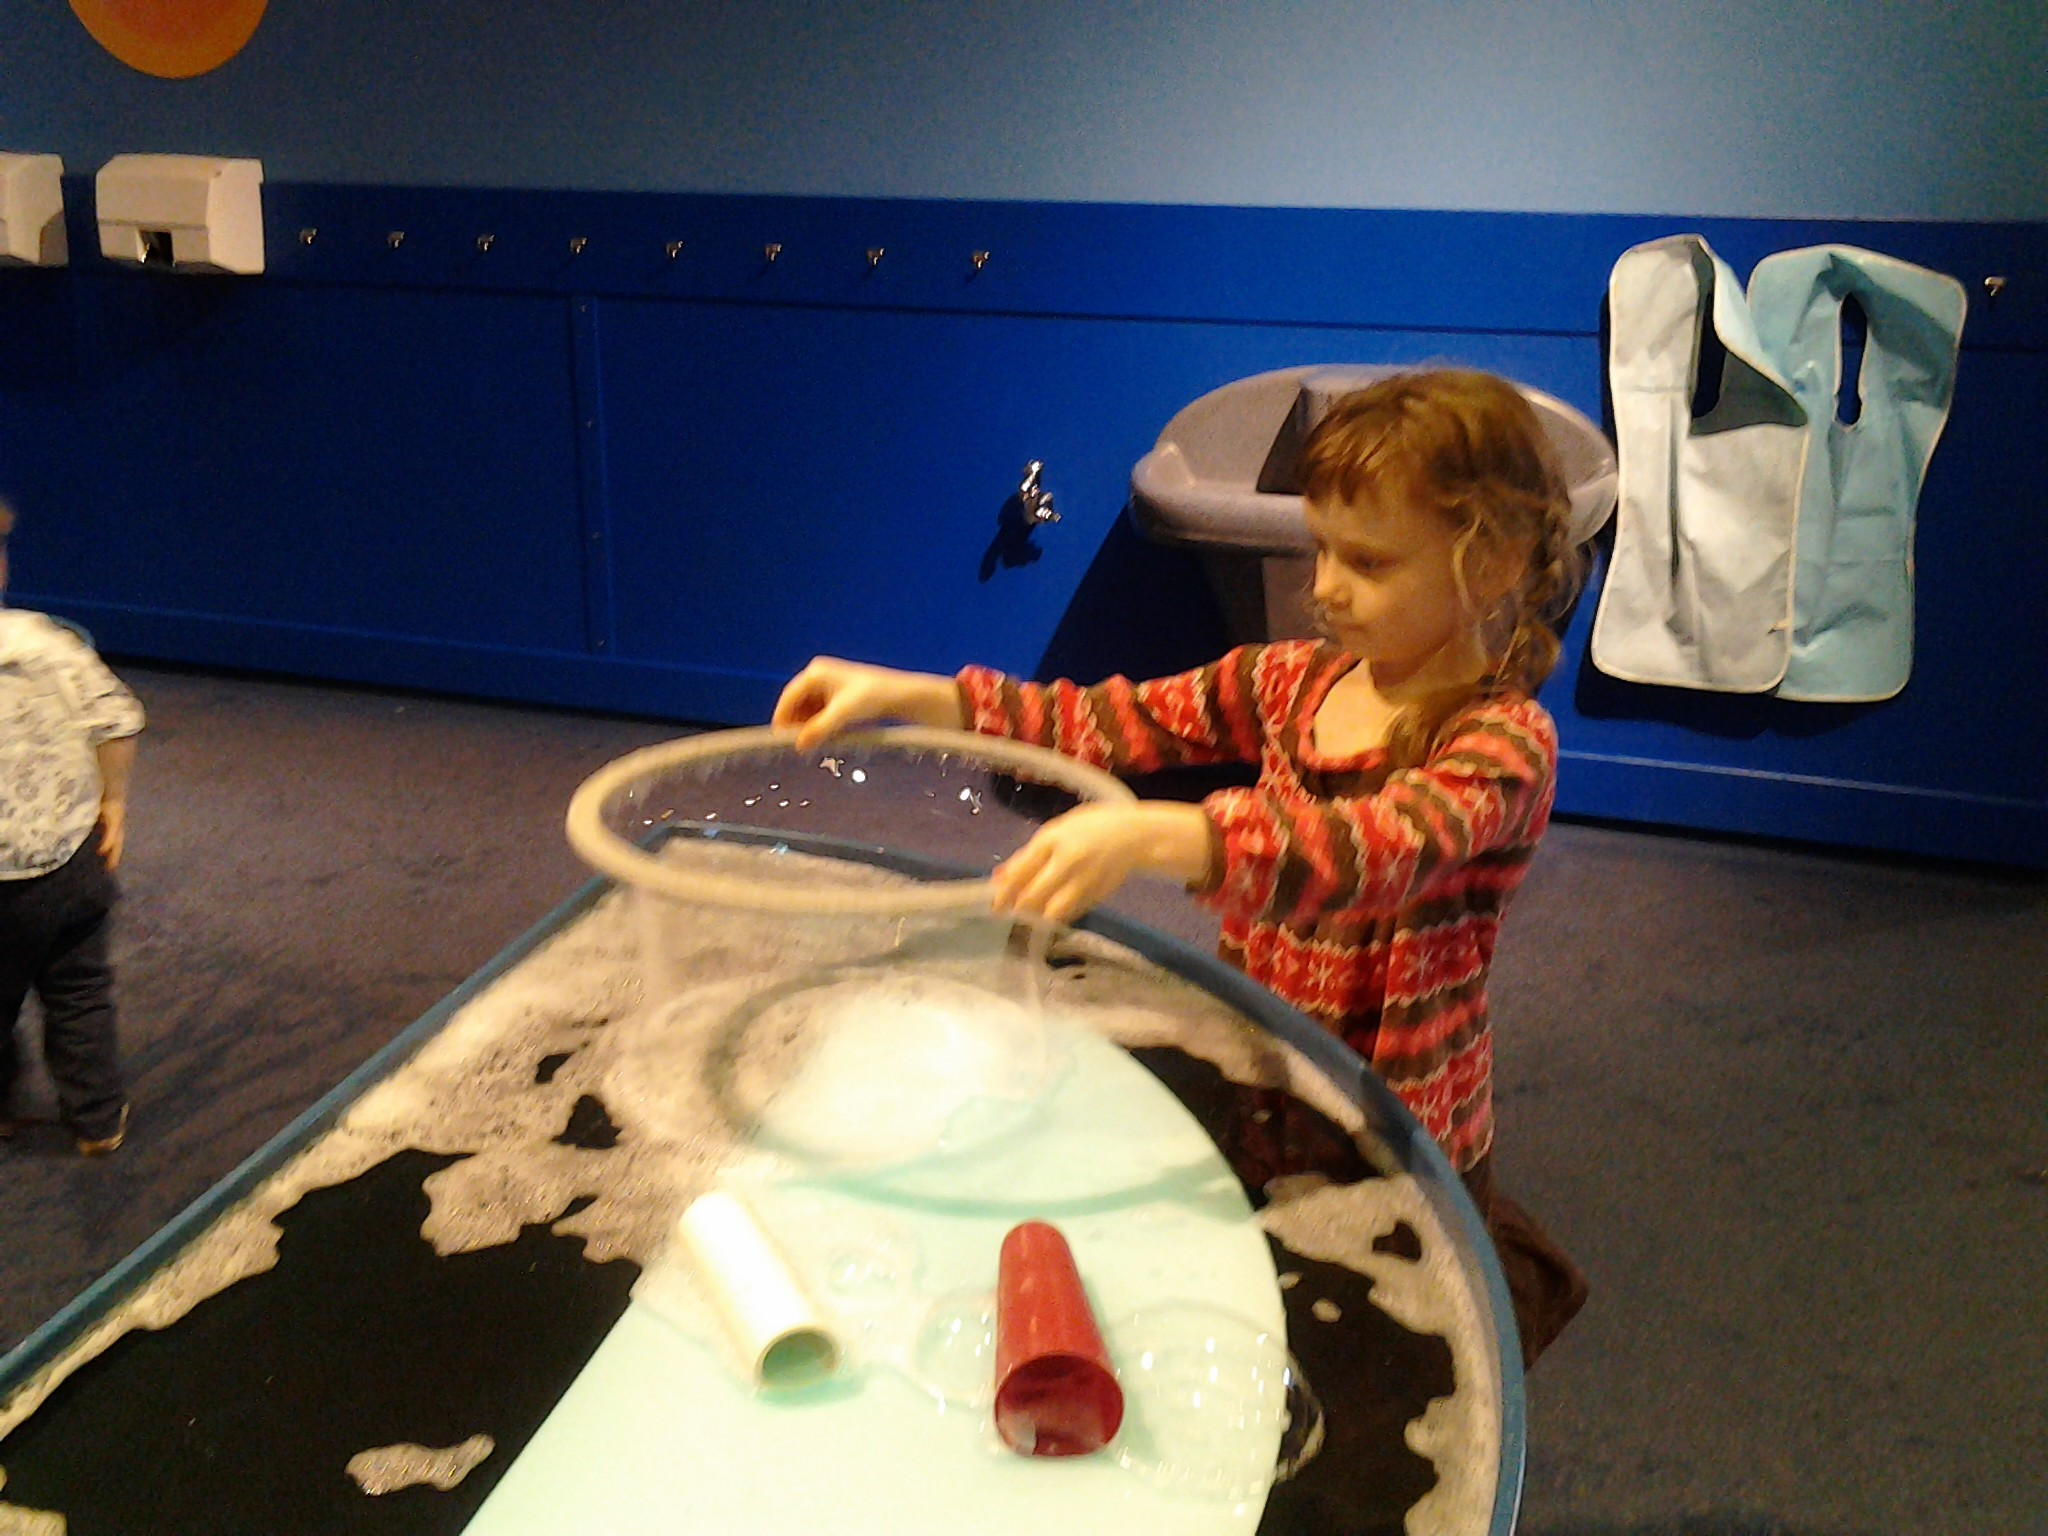 K making a huge bubble with a hoop in a pan of bubbles at the Boston Children's Museum